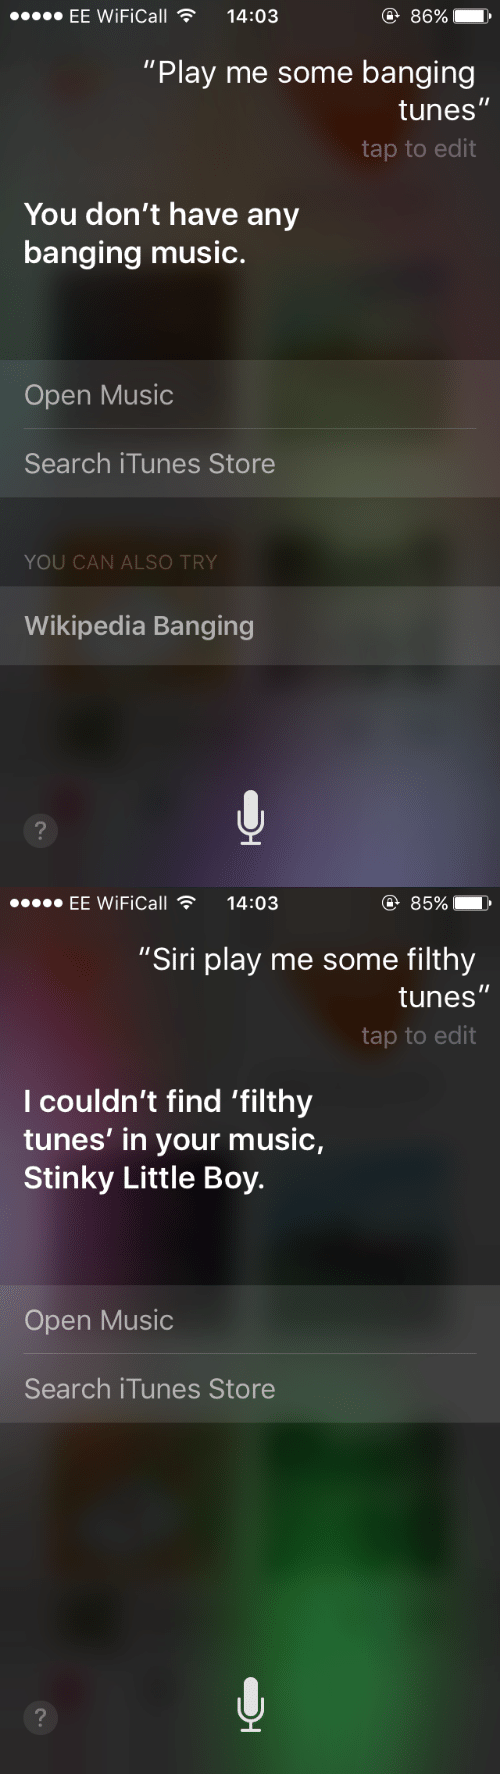 """Itunes Store: EE WiFiCall14:03  86%  """"Play me some banging  tunes  tap to edit  You don't have any  banging music.  Open Music  Search iTunes Store  YOU CAN ALSO TRY  Wikipedia Banging   EE WiFiCall14:03  ④ 85%  """"Siri play me some filthy  tunes  tap to edit  l couldn't find 'filthy  tunes' in your music,  Stinky Little Boy.  Open Music  Search iTunes Store"""